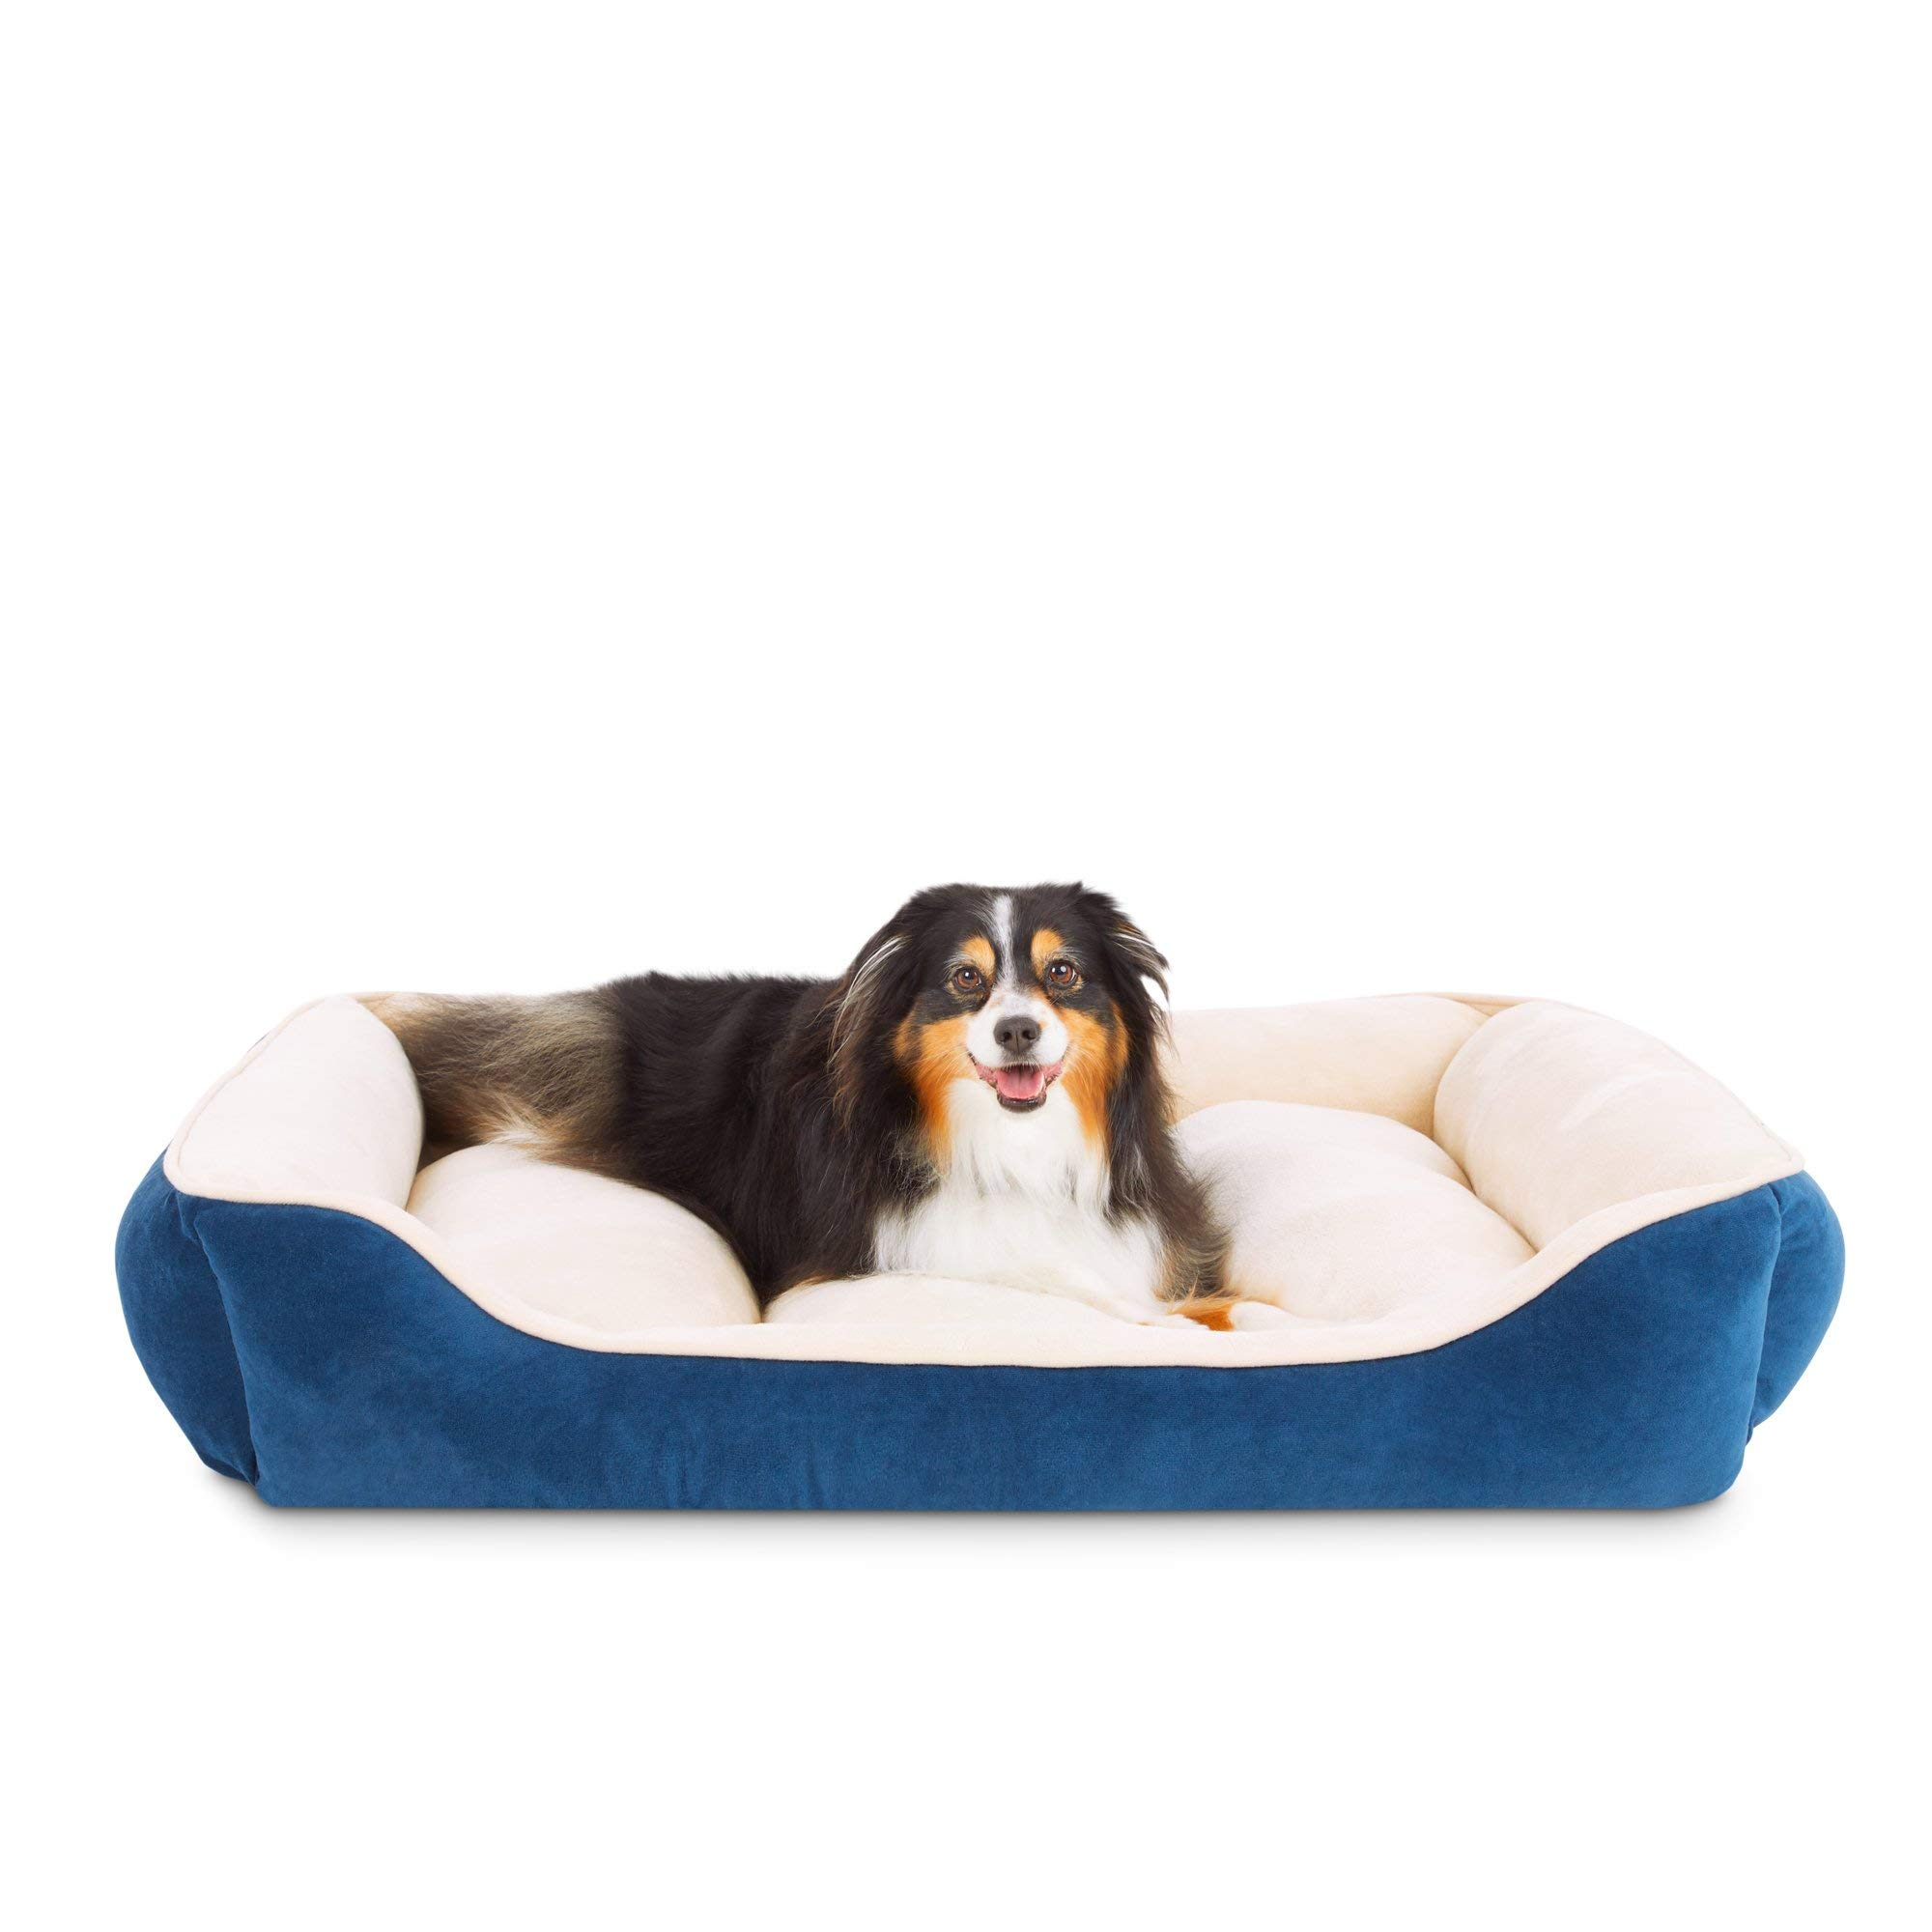 Animaze Navy Rectangle Bolster Dog Bed, 40'' L X 30'' W X 6'' H, Large, Blue by Animaze